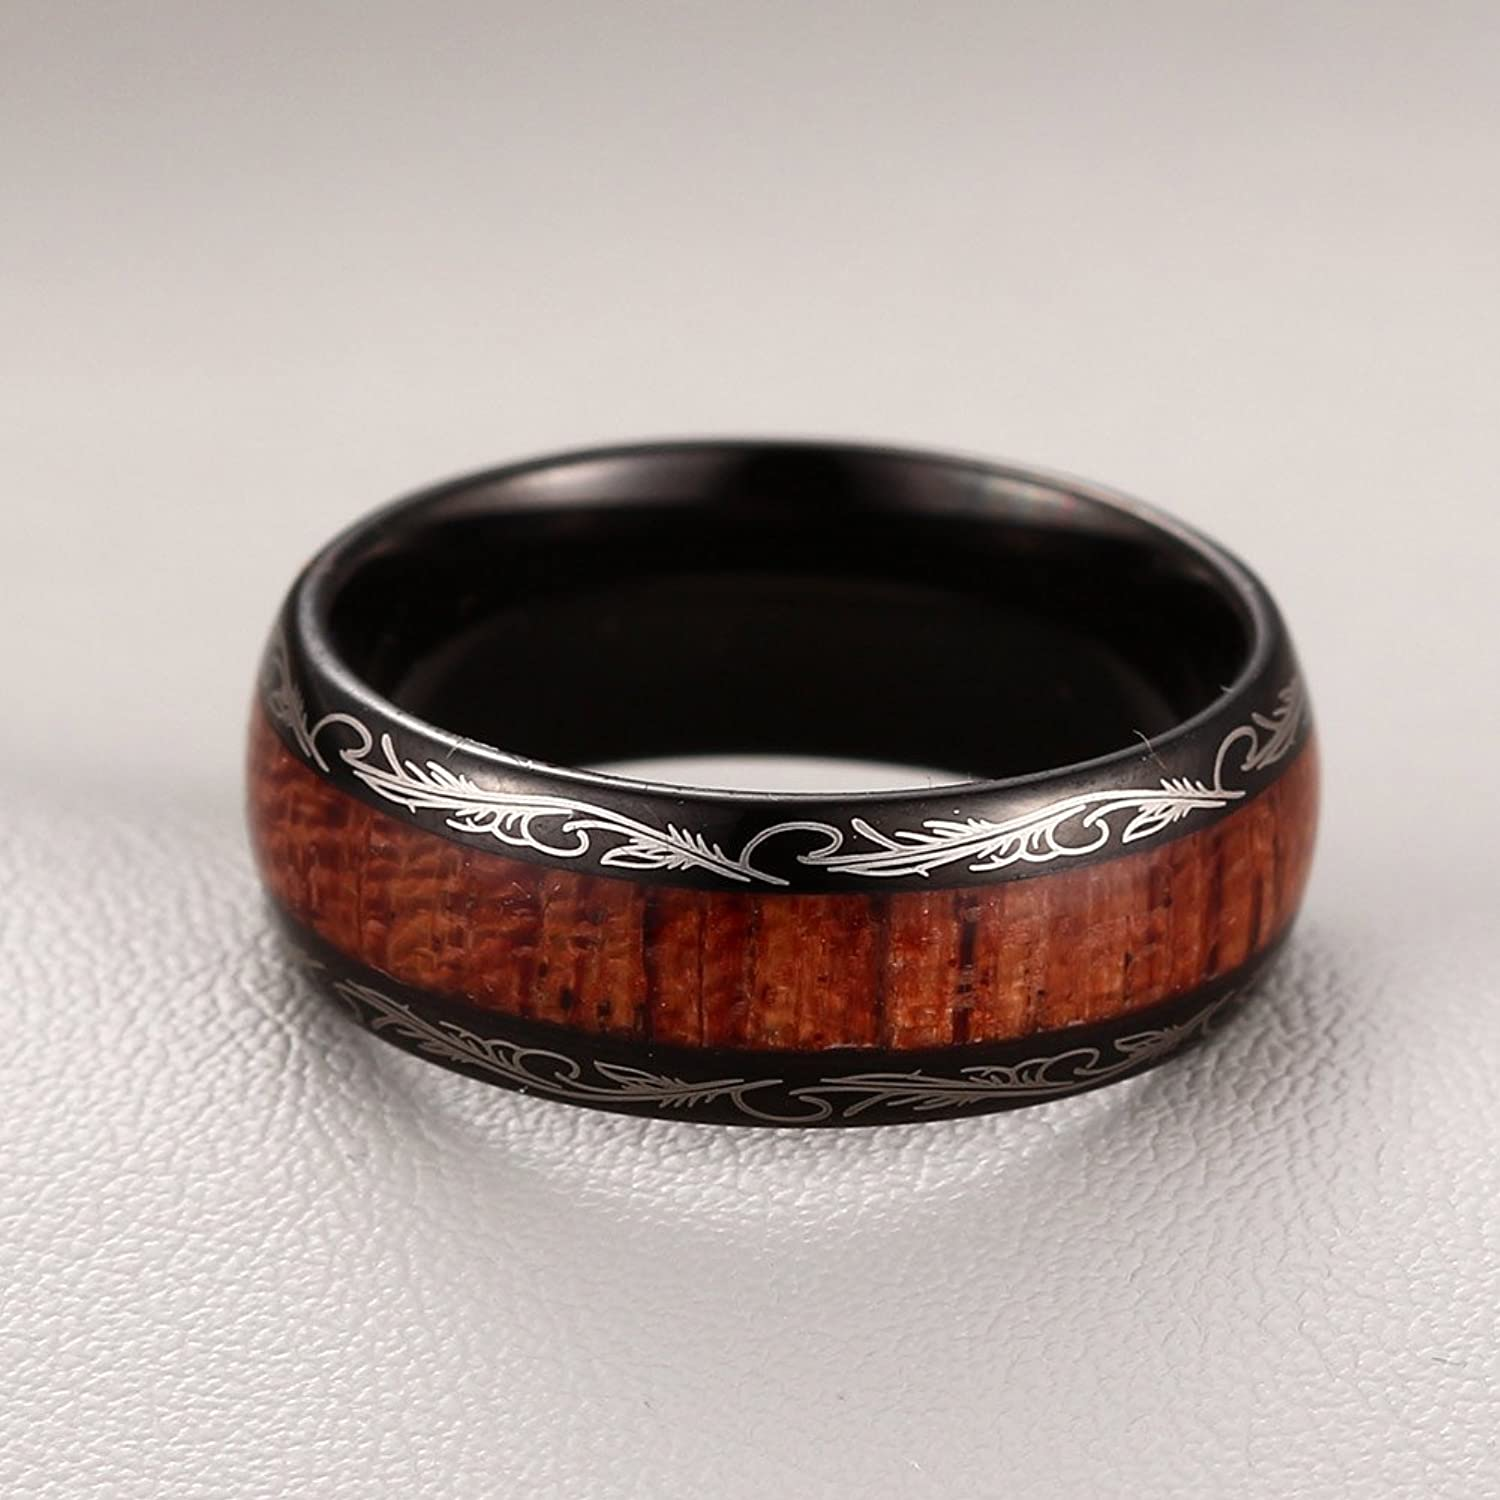 Caperci Menu0027s 8mm Vintage Dome Wood Inlay Tungsten Carbide Ring Wedding  Band Size 7.5 | Amazon.com Design Inspirations